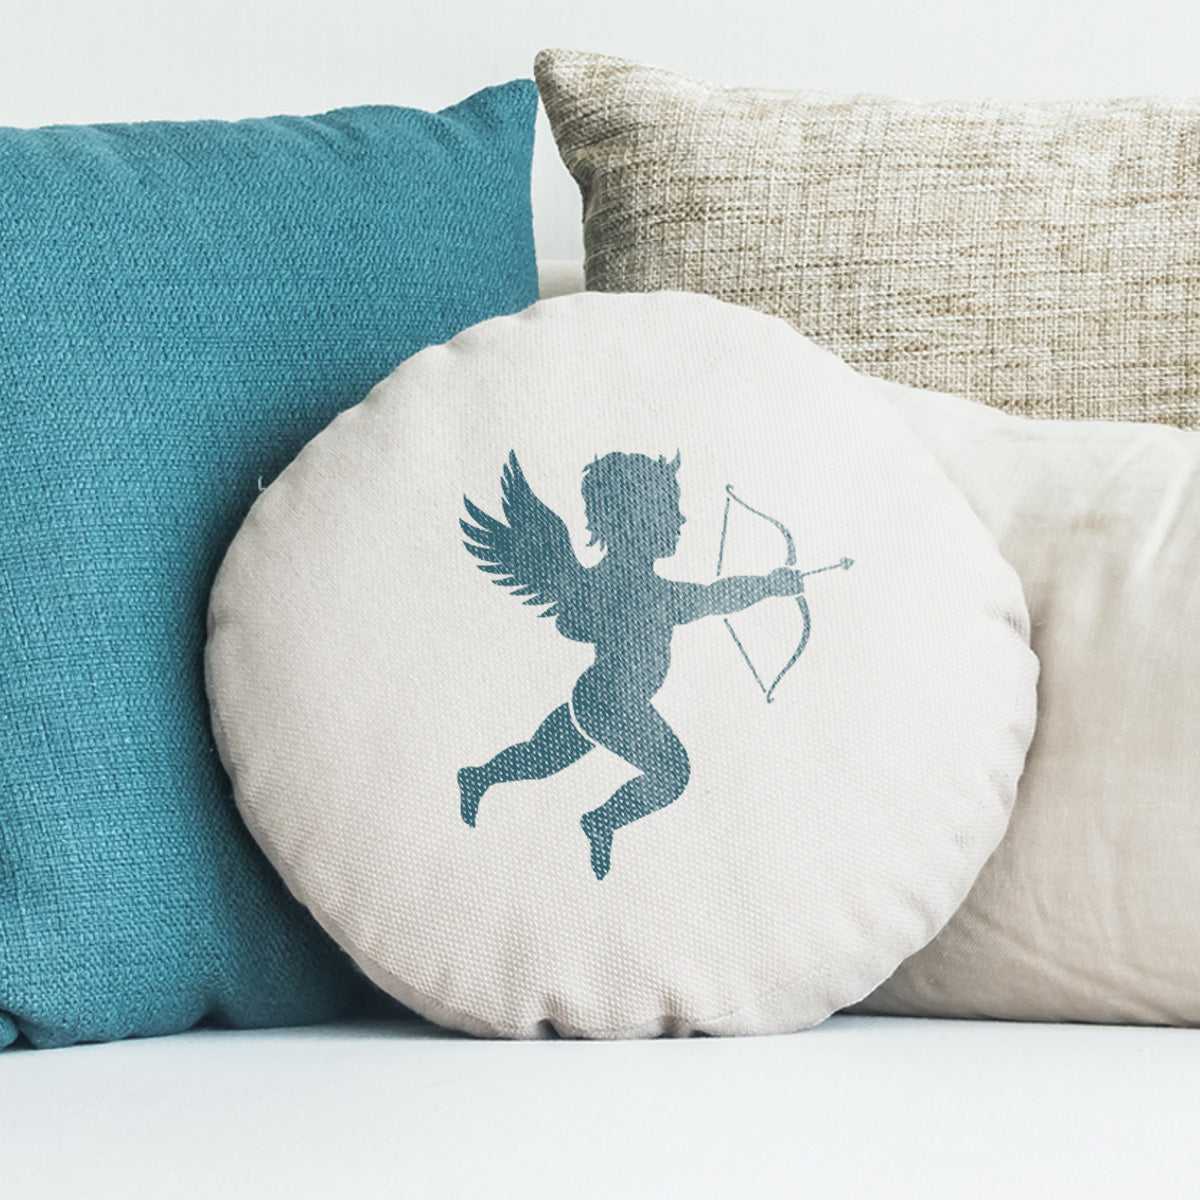 CraftStar Cupid Stencil on Cushion